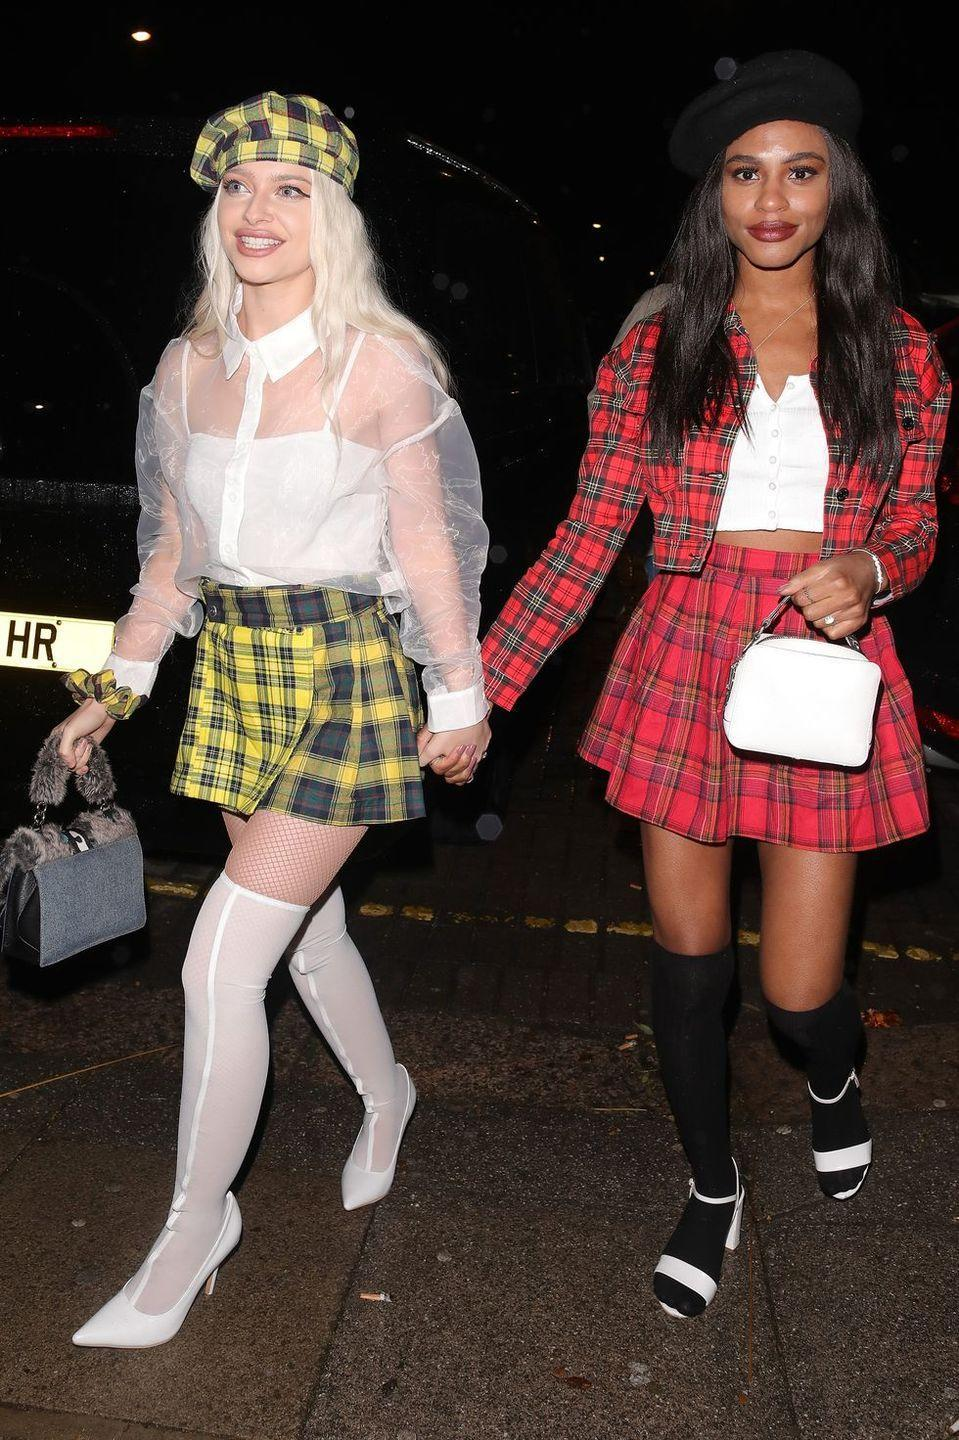 """<p>Whether you take on Cher Horowitz solo or grab a friend to play Dionne Davenport, taking on characters from <em>Clueless </em>involves a lot of plaid and a lot of attitude. </p><p><a class=""""link rapid-noclick-resp"""" href=""""https://www.amazon.com/LYANER-Womens-Tartan-Bodycon-Yellow/dp/B08FSM69DQ?tag=syn-yahoo-20&ascsubtag=%5Bartid%7C10070.g.2683%5Bsrc%7Cyahoo-us"""" rel=""""nofollow noopener"""" target=""""_blank"""" data-ylk=""""slk:SHOP YELLOW PLAID SKIRT"""">SHOP YELLOW PLAID SKIRT</a></p><p><a class=""""link rapid-noclick-resp"""" href=""""https://www.amazon.com/SOLY-HUX-Womens-Pleated-Skater/dp/B08BLFF88Z?tag=syn-yahoo-20&ascsubtag=%5Bartid%7C10070.g.2683%5Bsrc%7Cyahoo-us"""" rel=""""nofollow noopener"""" target=""""_blank"""" data-ylk=""""slk:SHOP RED PLAID SKIRT"""">SHOP RED PLAID SKIRT</a></p>"""